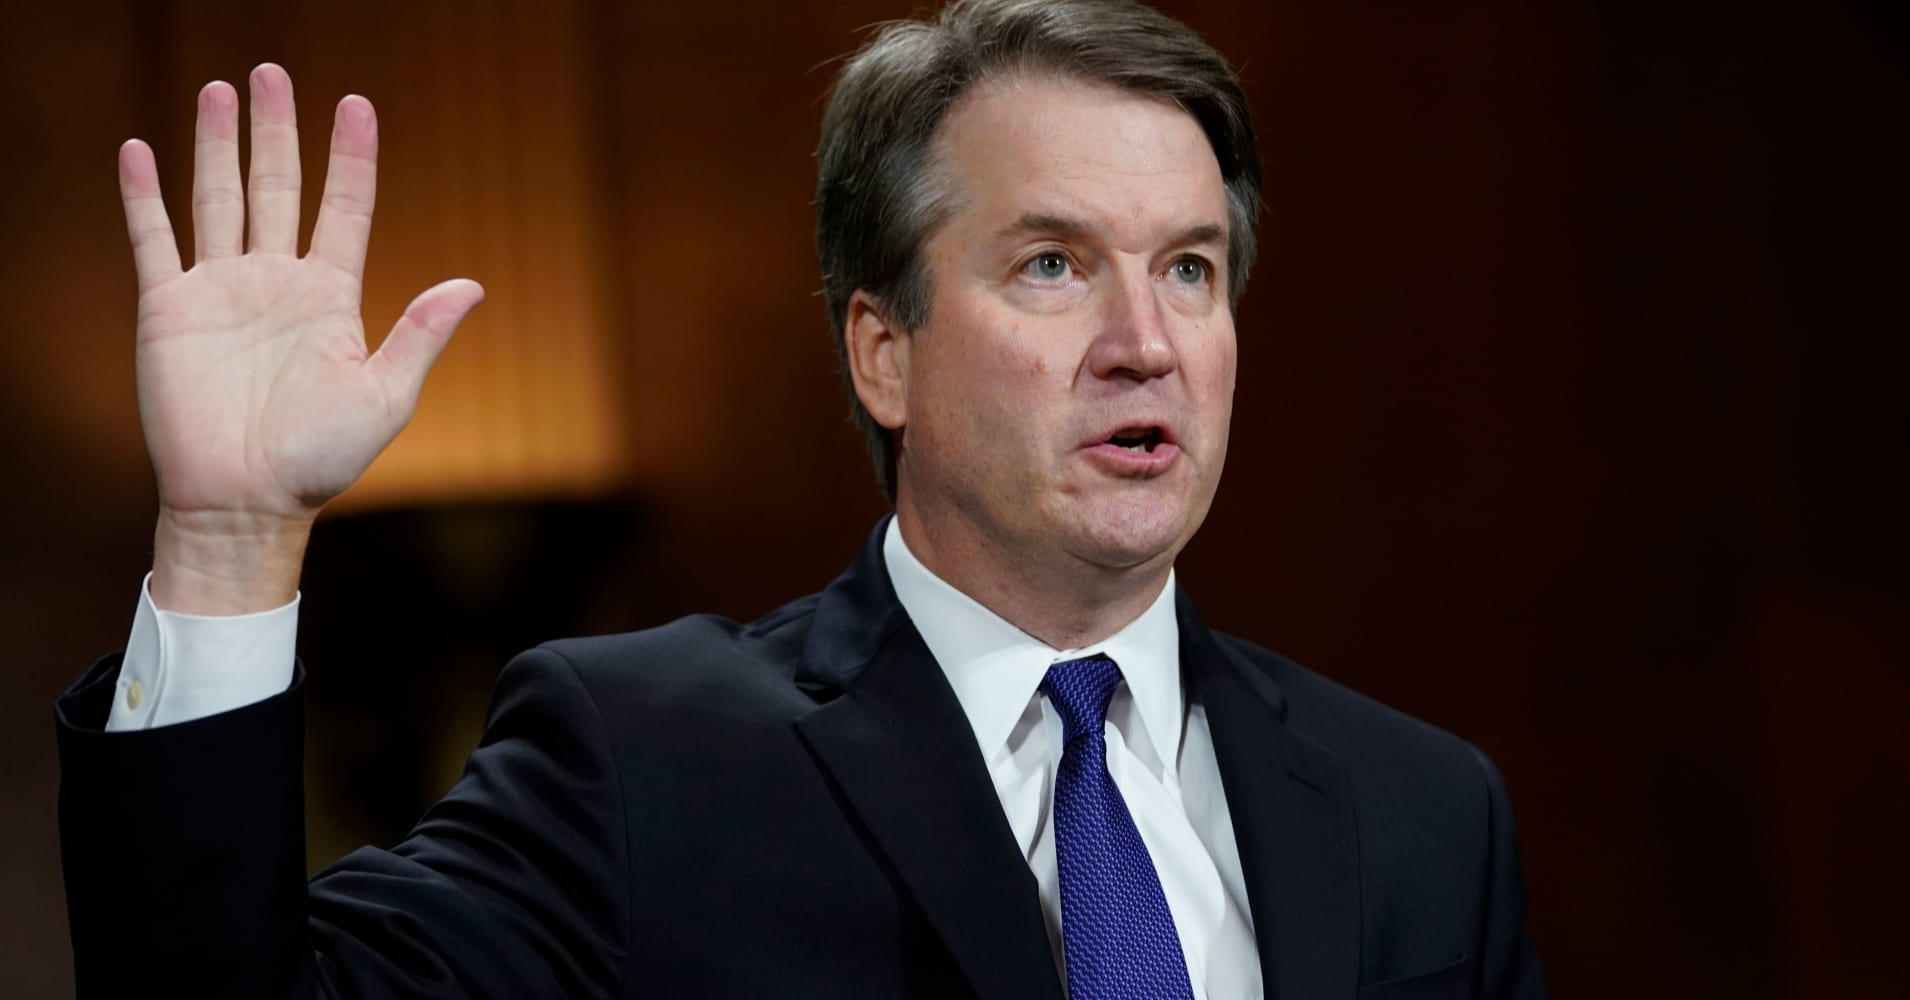 'Fully confident' White House receives FBI report on Kavanaugh